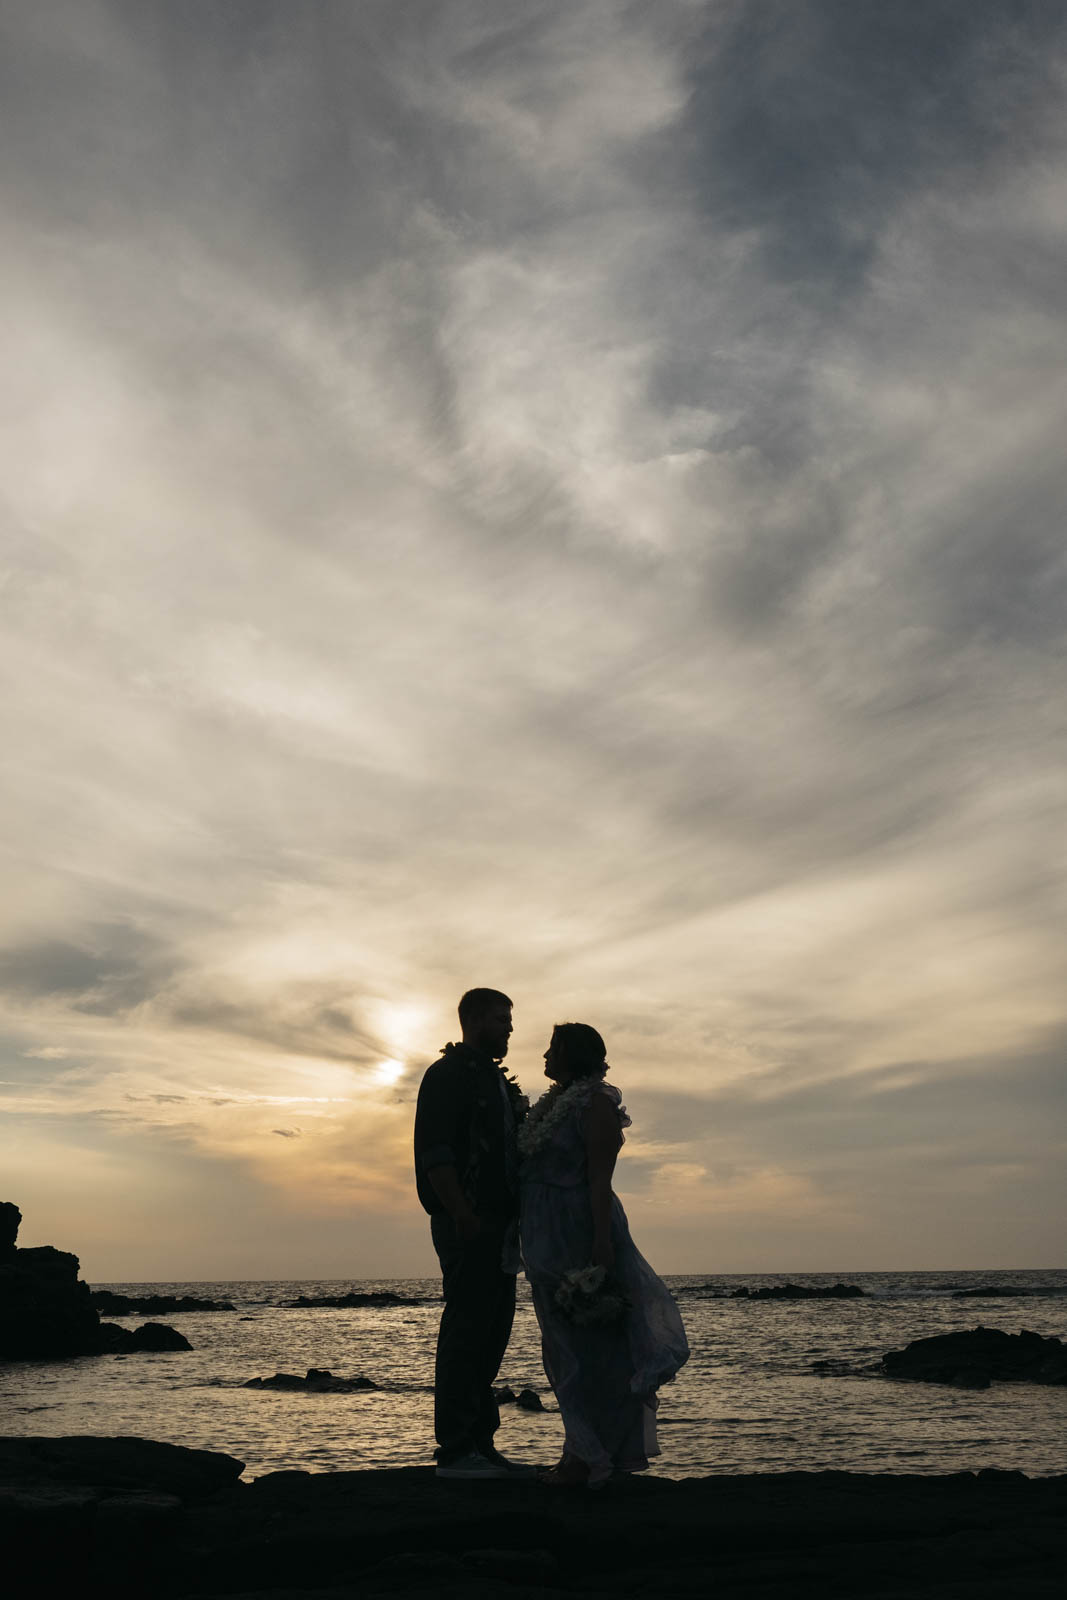 Silhouette of the bride and groom in Kona, Hawaii.